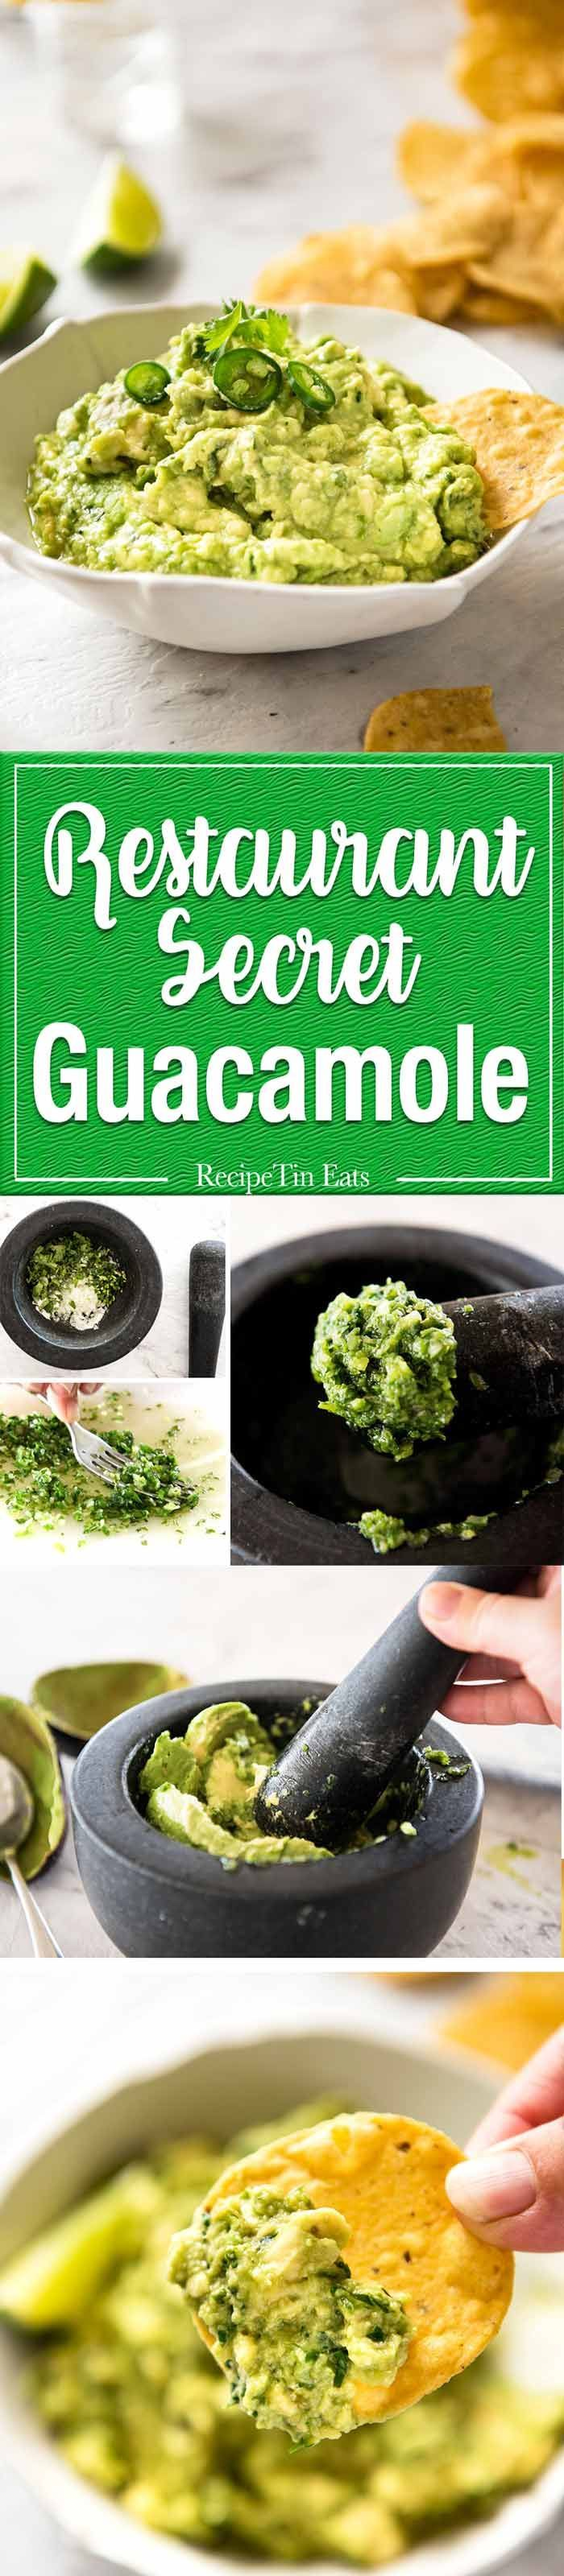 An authentic Guacamole recipe, the way it's made in Mexico and by top Mexican restaurants around the world. The secret step is to make a paste with onion, jalapeno/serrano and coriander/cilantro. Makes all the difference! http://www.recipetineats.com